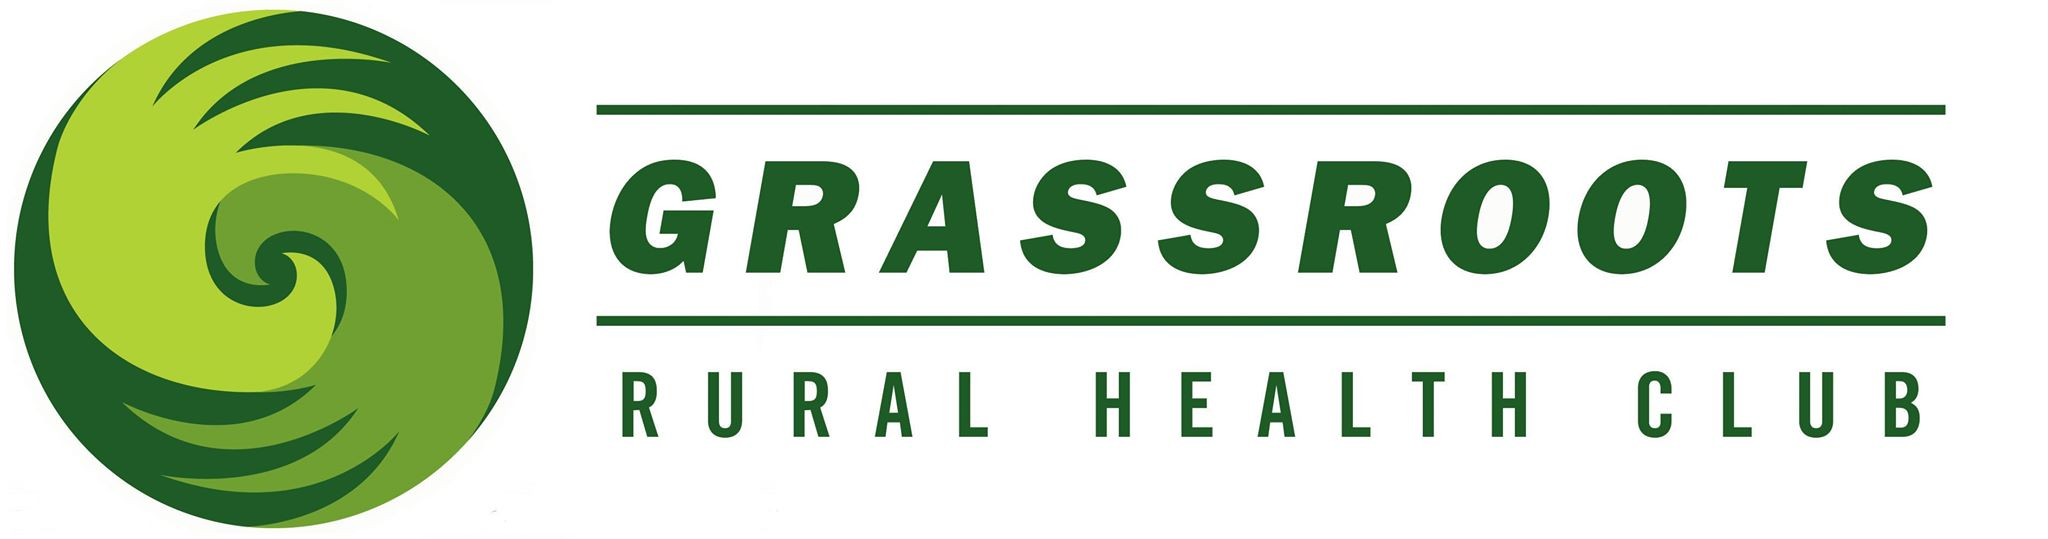 Grassroots Rural Health Club